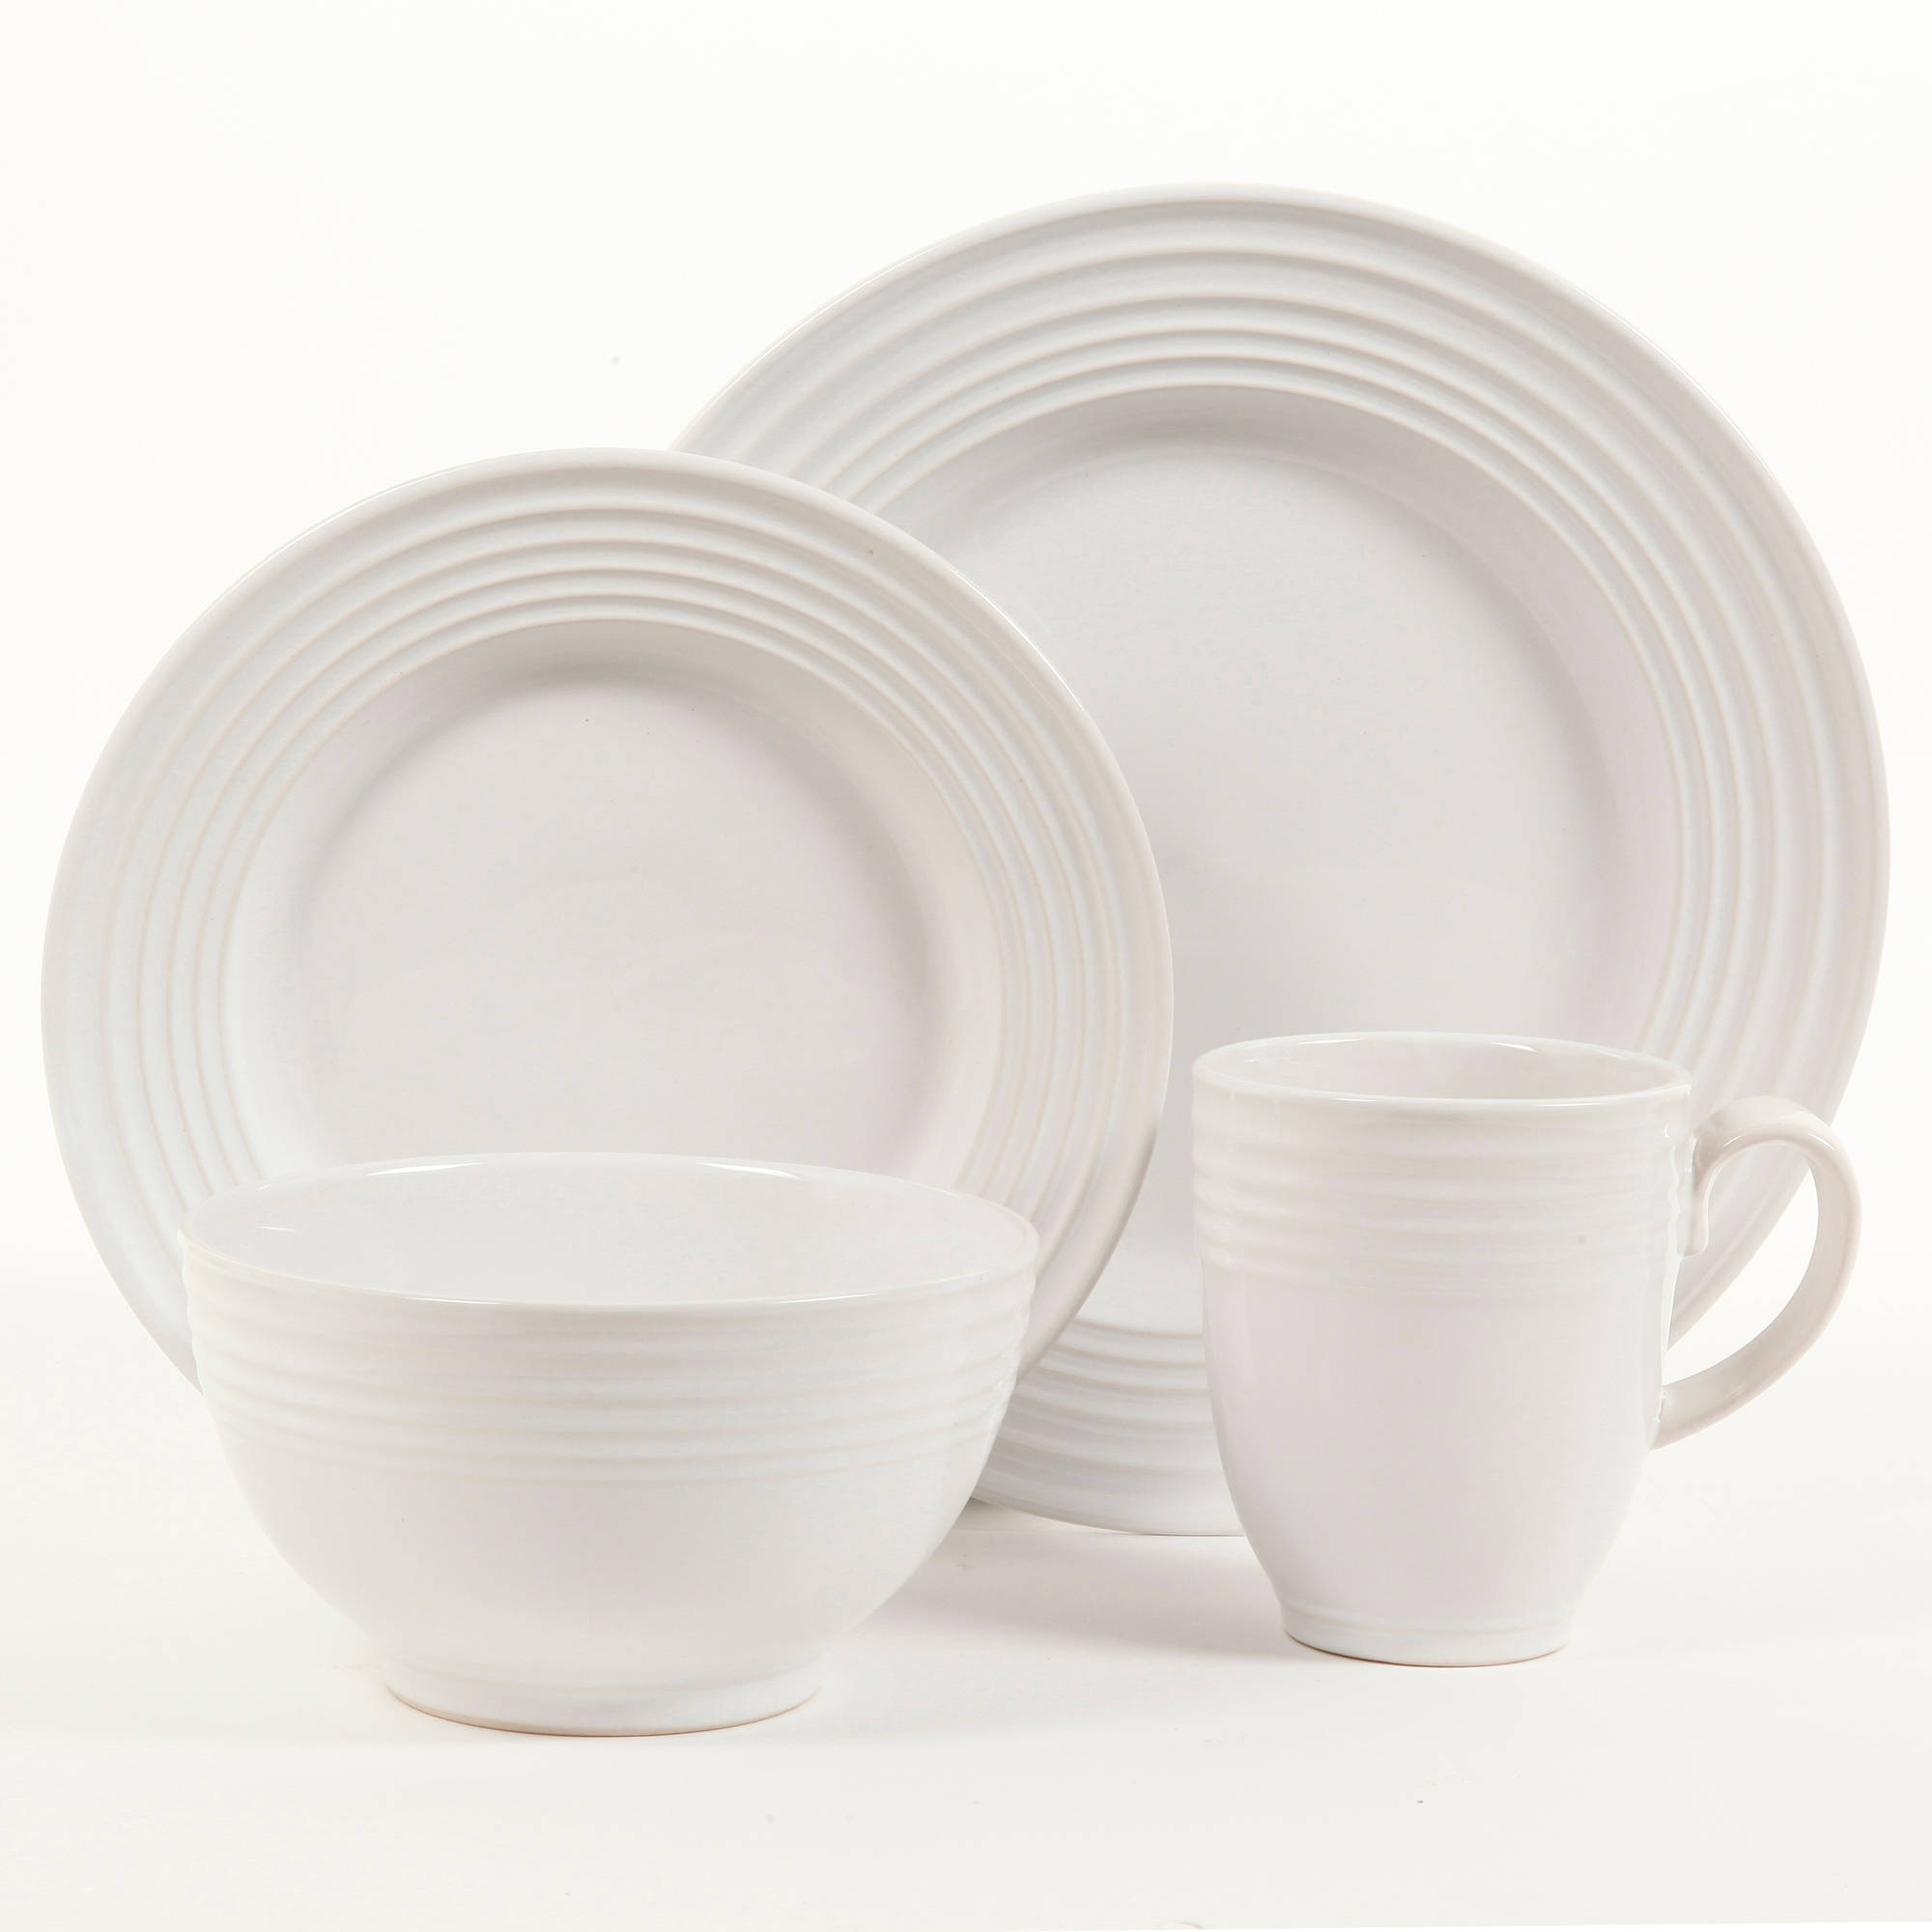 cheap dinnerware sets uk - pezcame.com & Cheap Dinnerware Sets Uk u0026 24 Piece Dinner Set (3250) Sc 1 Th 224